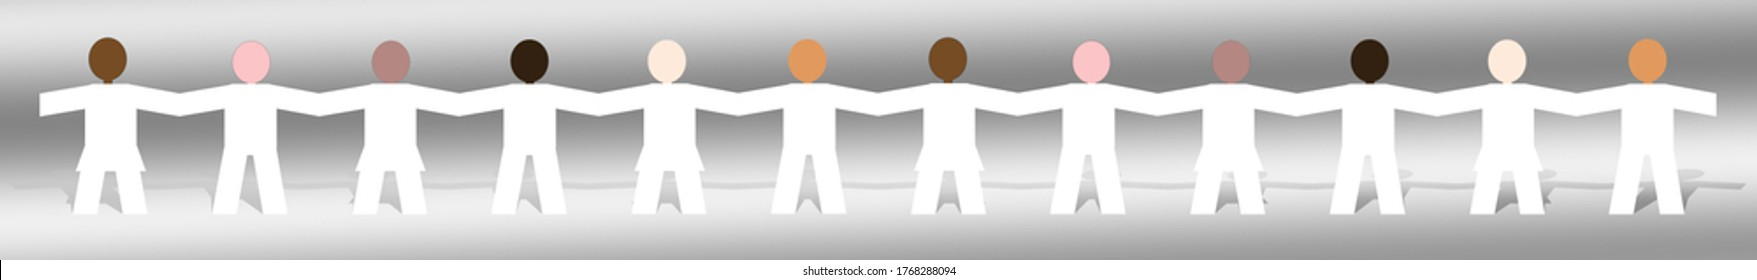 A line of twelve cut-out paper-chain figures, with white bodies and colored multicultural faces, their hands joined as a symbol of unity